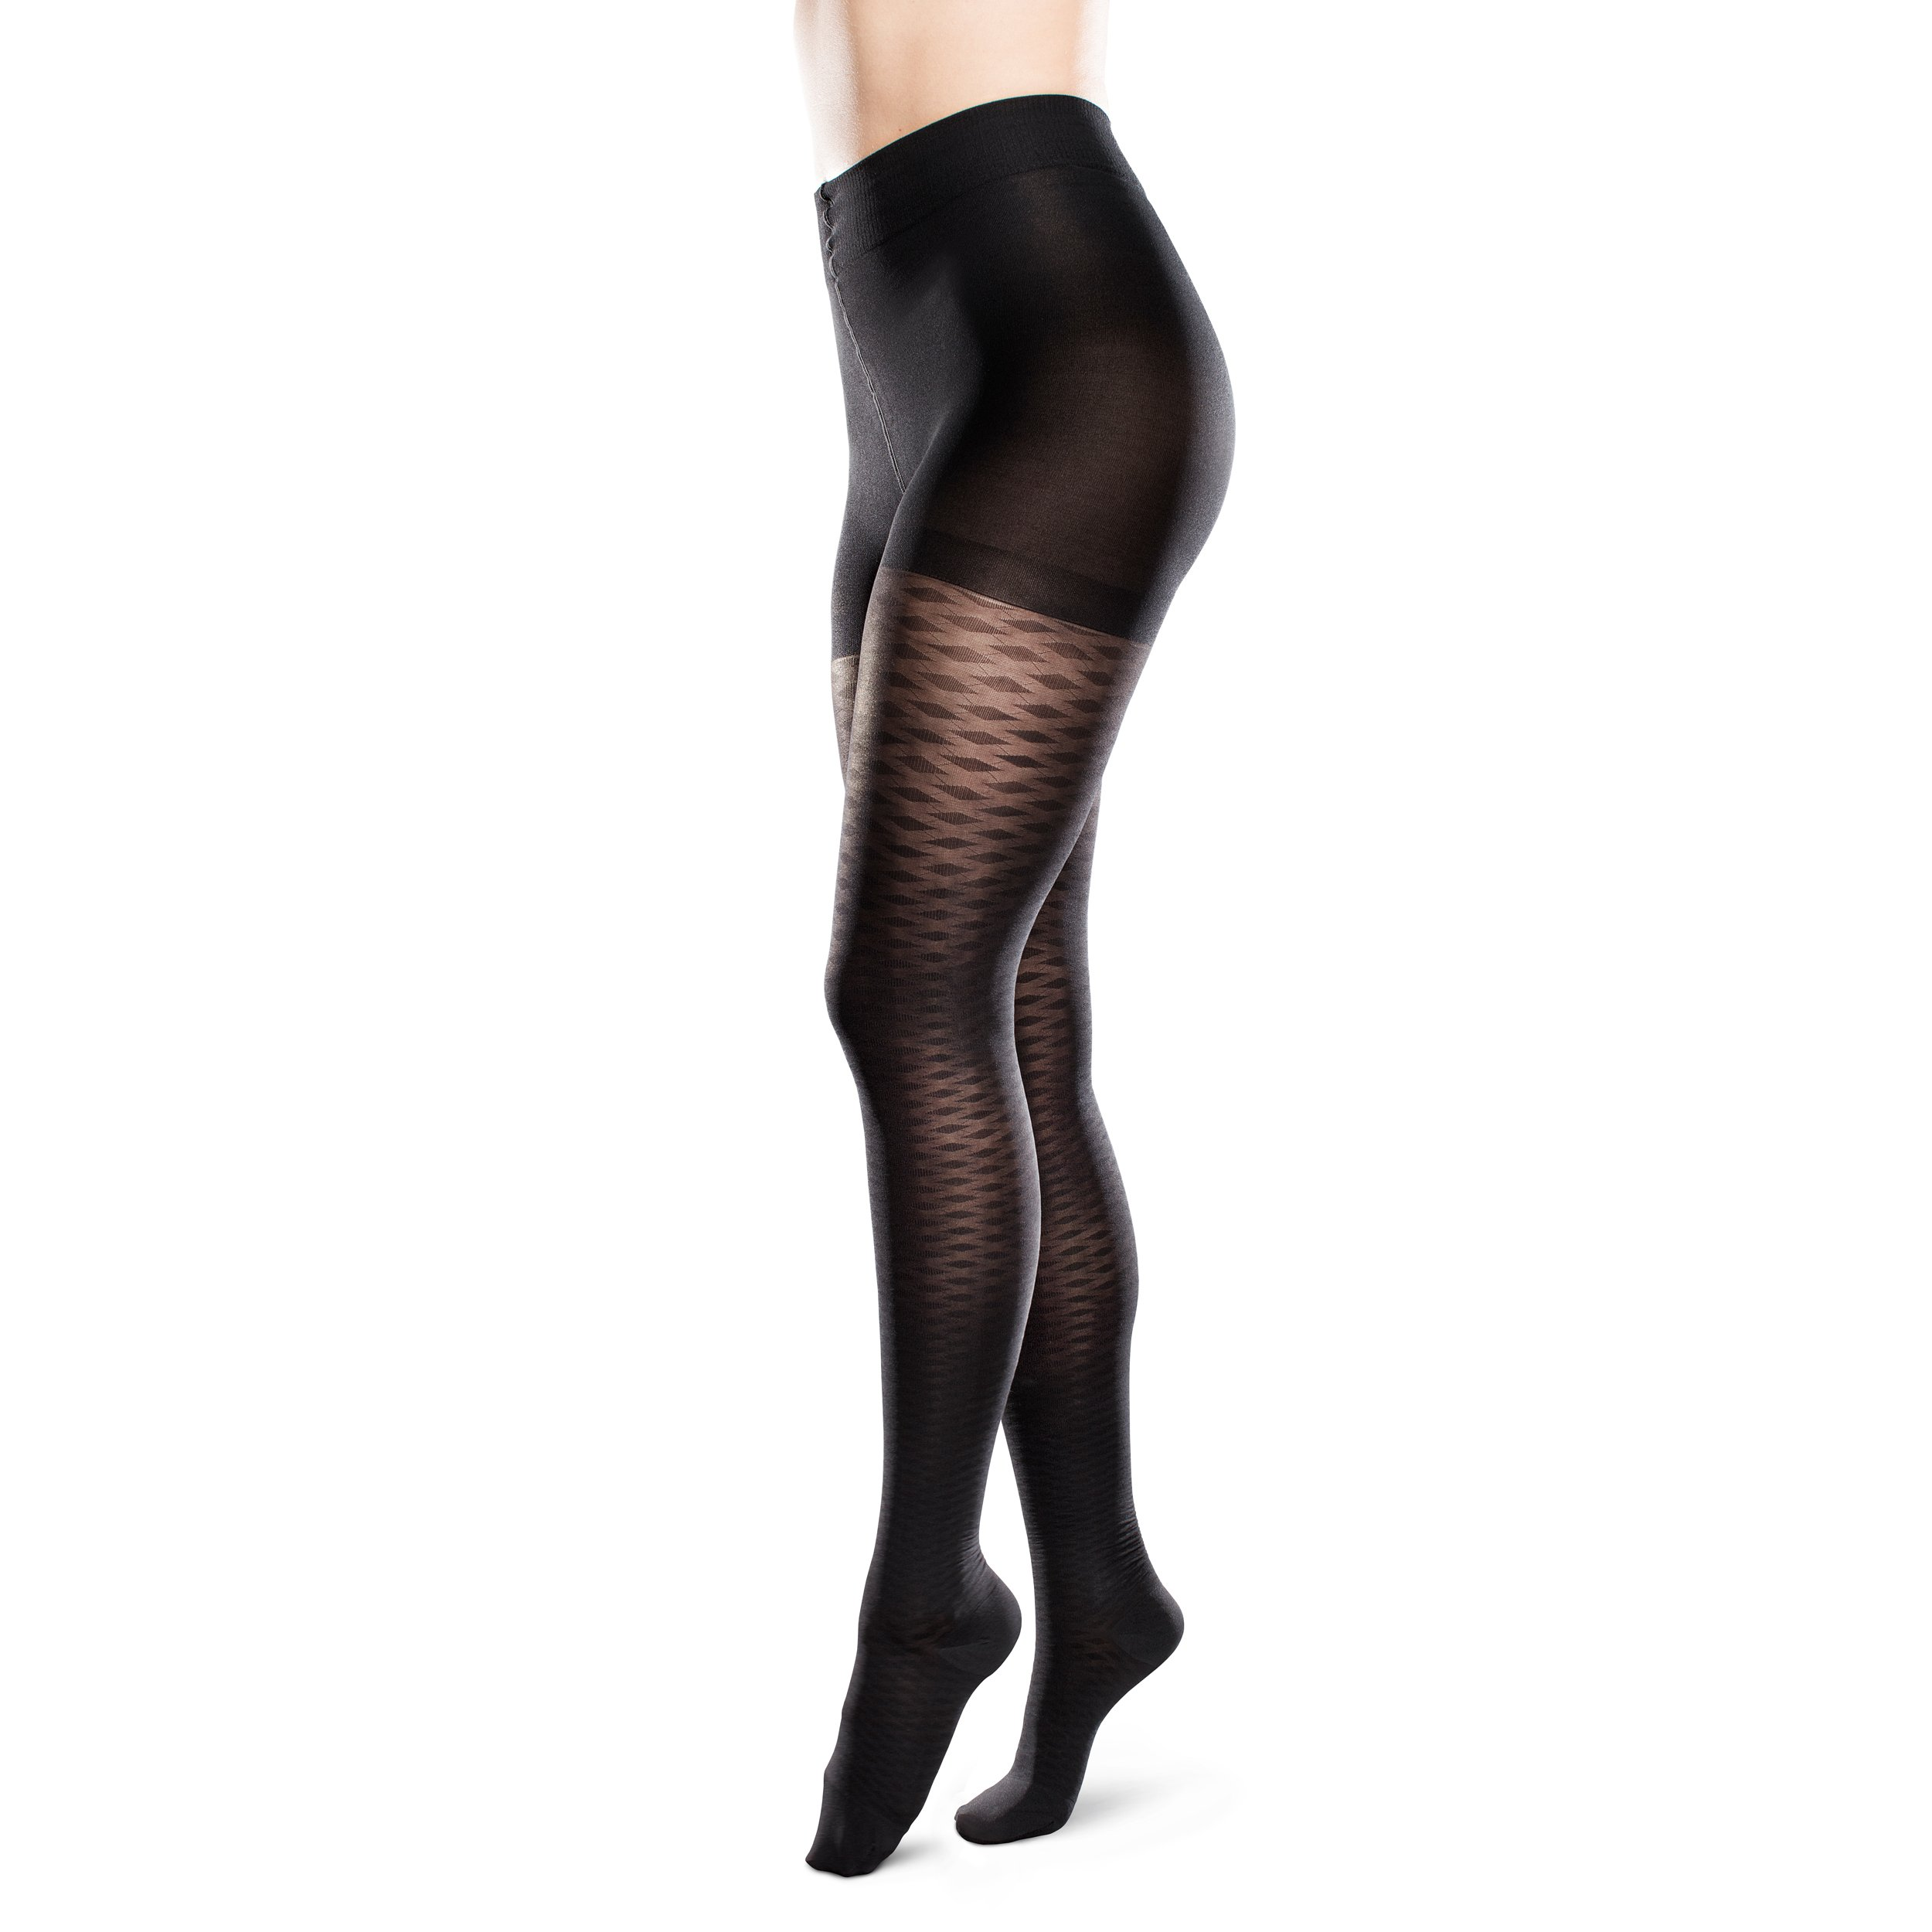 Sheer Ease Women's Diamond Patterned Support Pantyhose 20-30mmHg Moderate Compression Nylons (Black, Small Long )